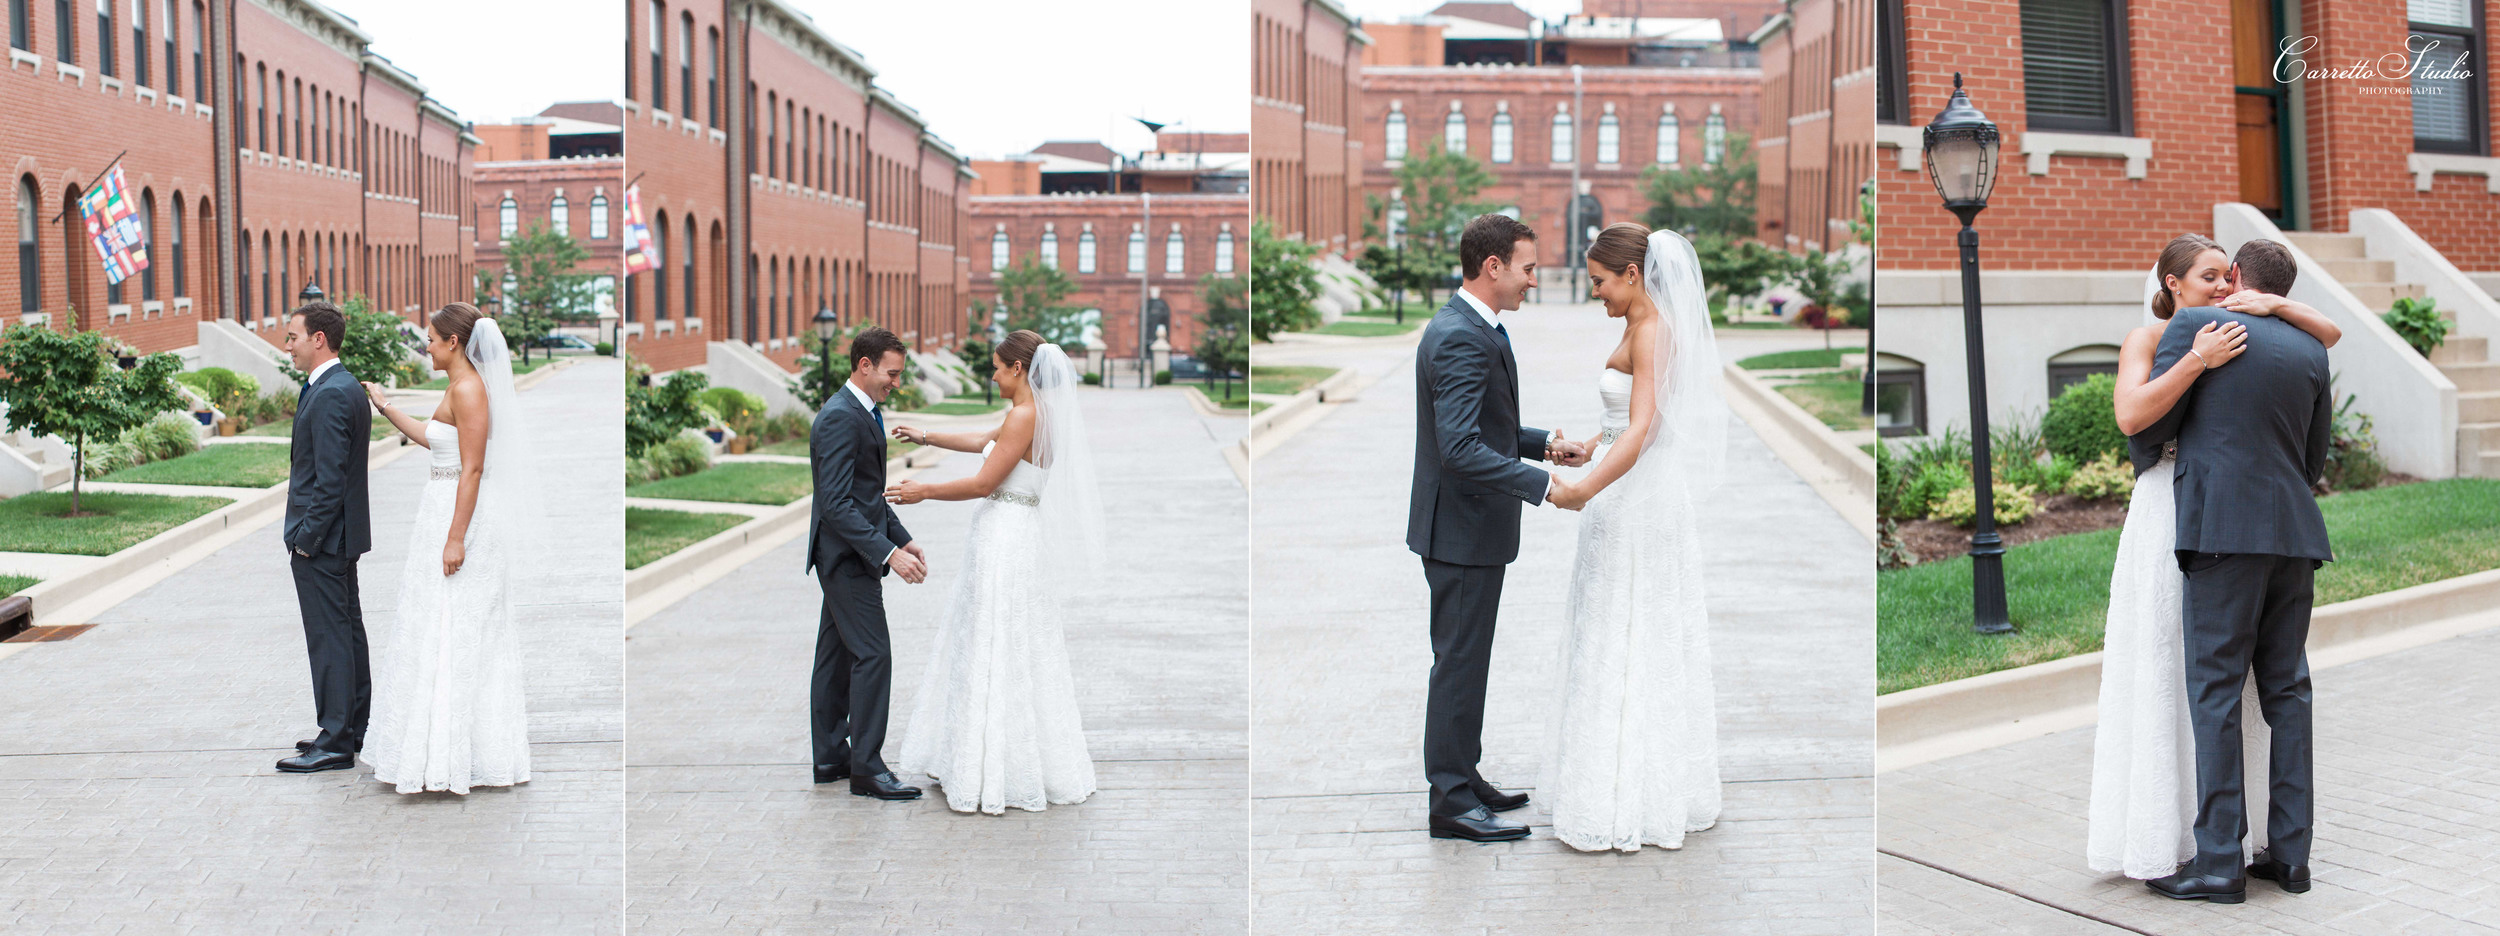 St Louis Wedding Photography-1014.jpg